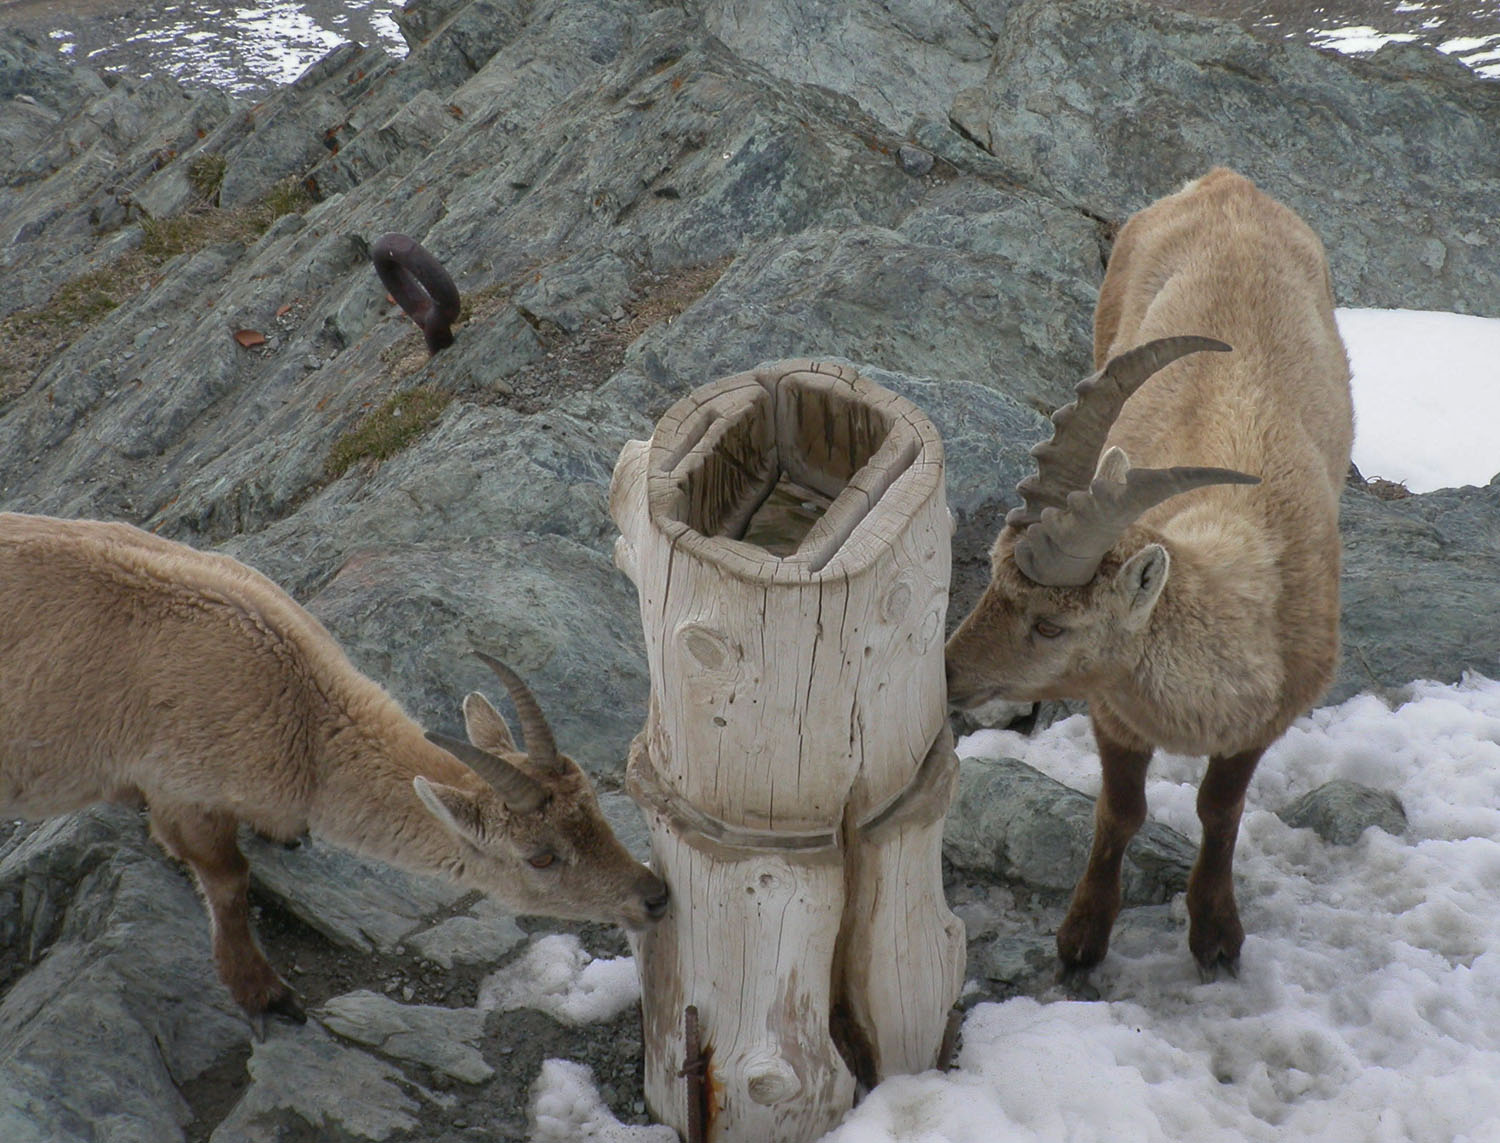 Switzerland-Zermatt-Gornergrat-Ibex